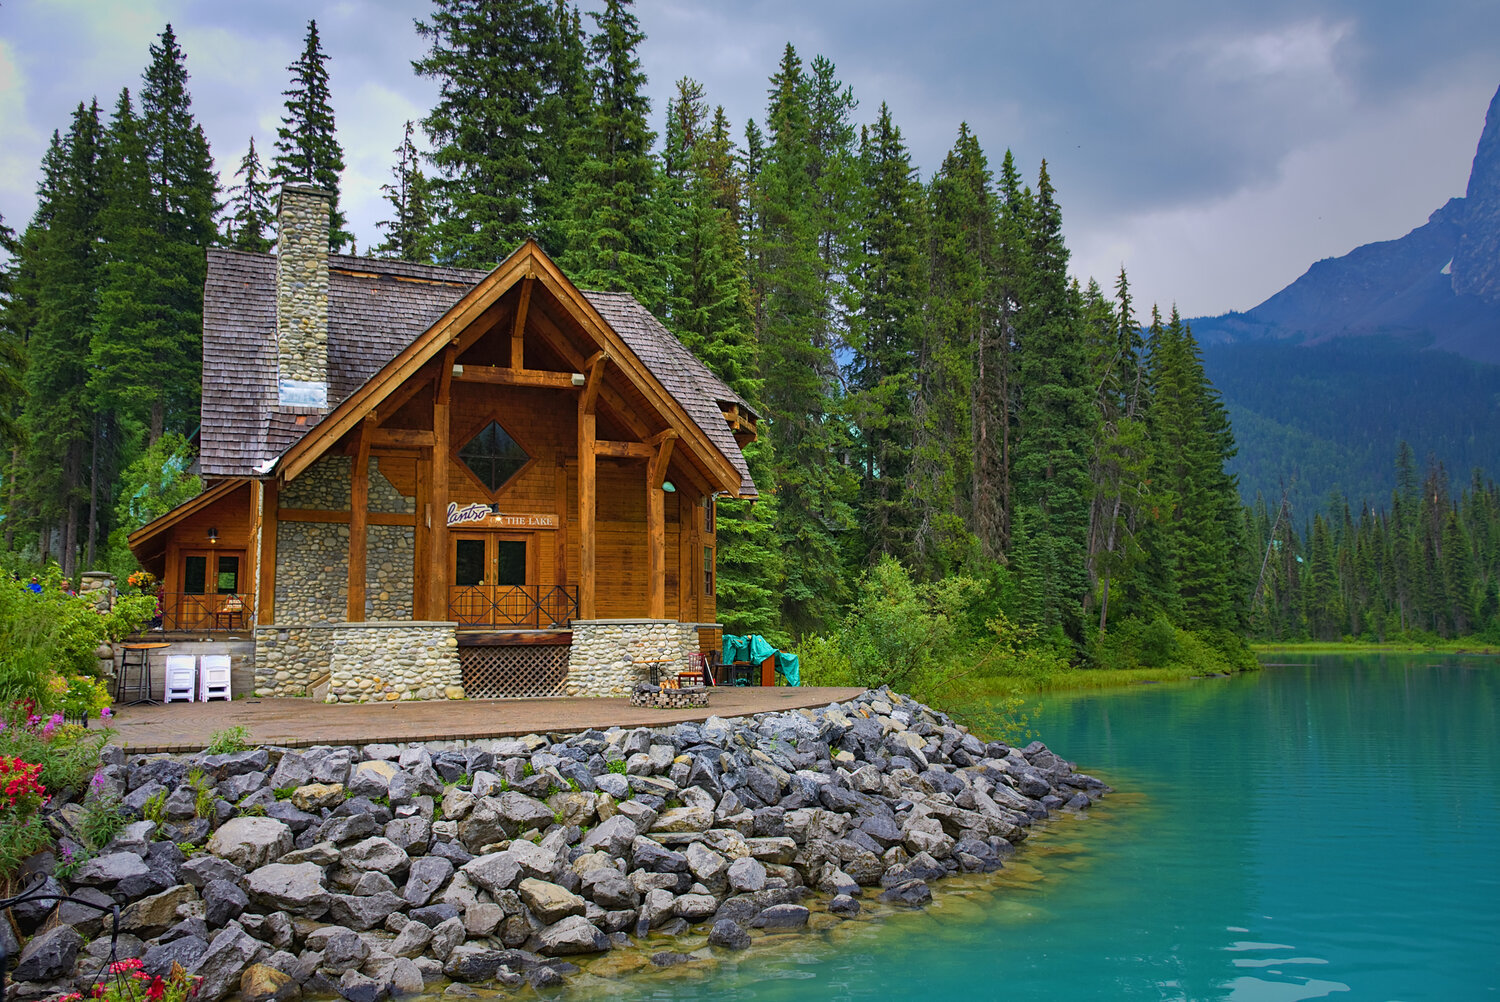 Top Tips For Designing Your Own Off-Grid Cabin